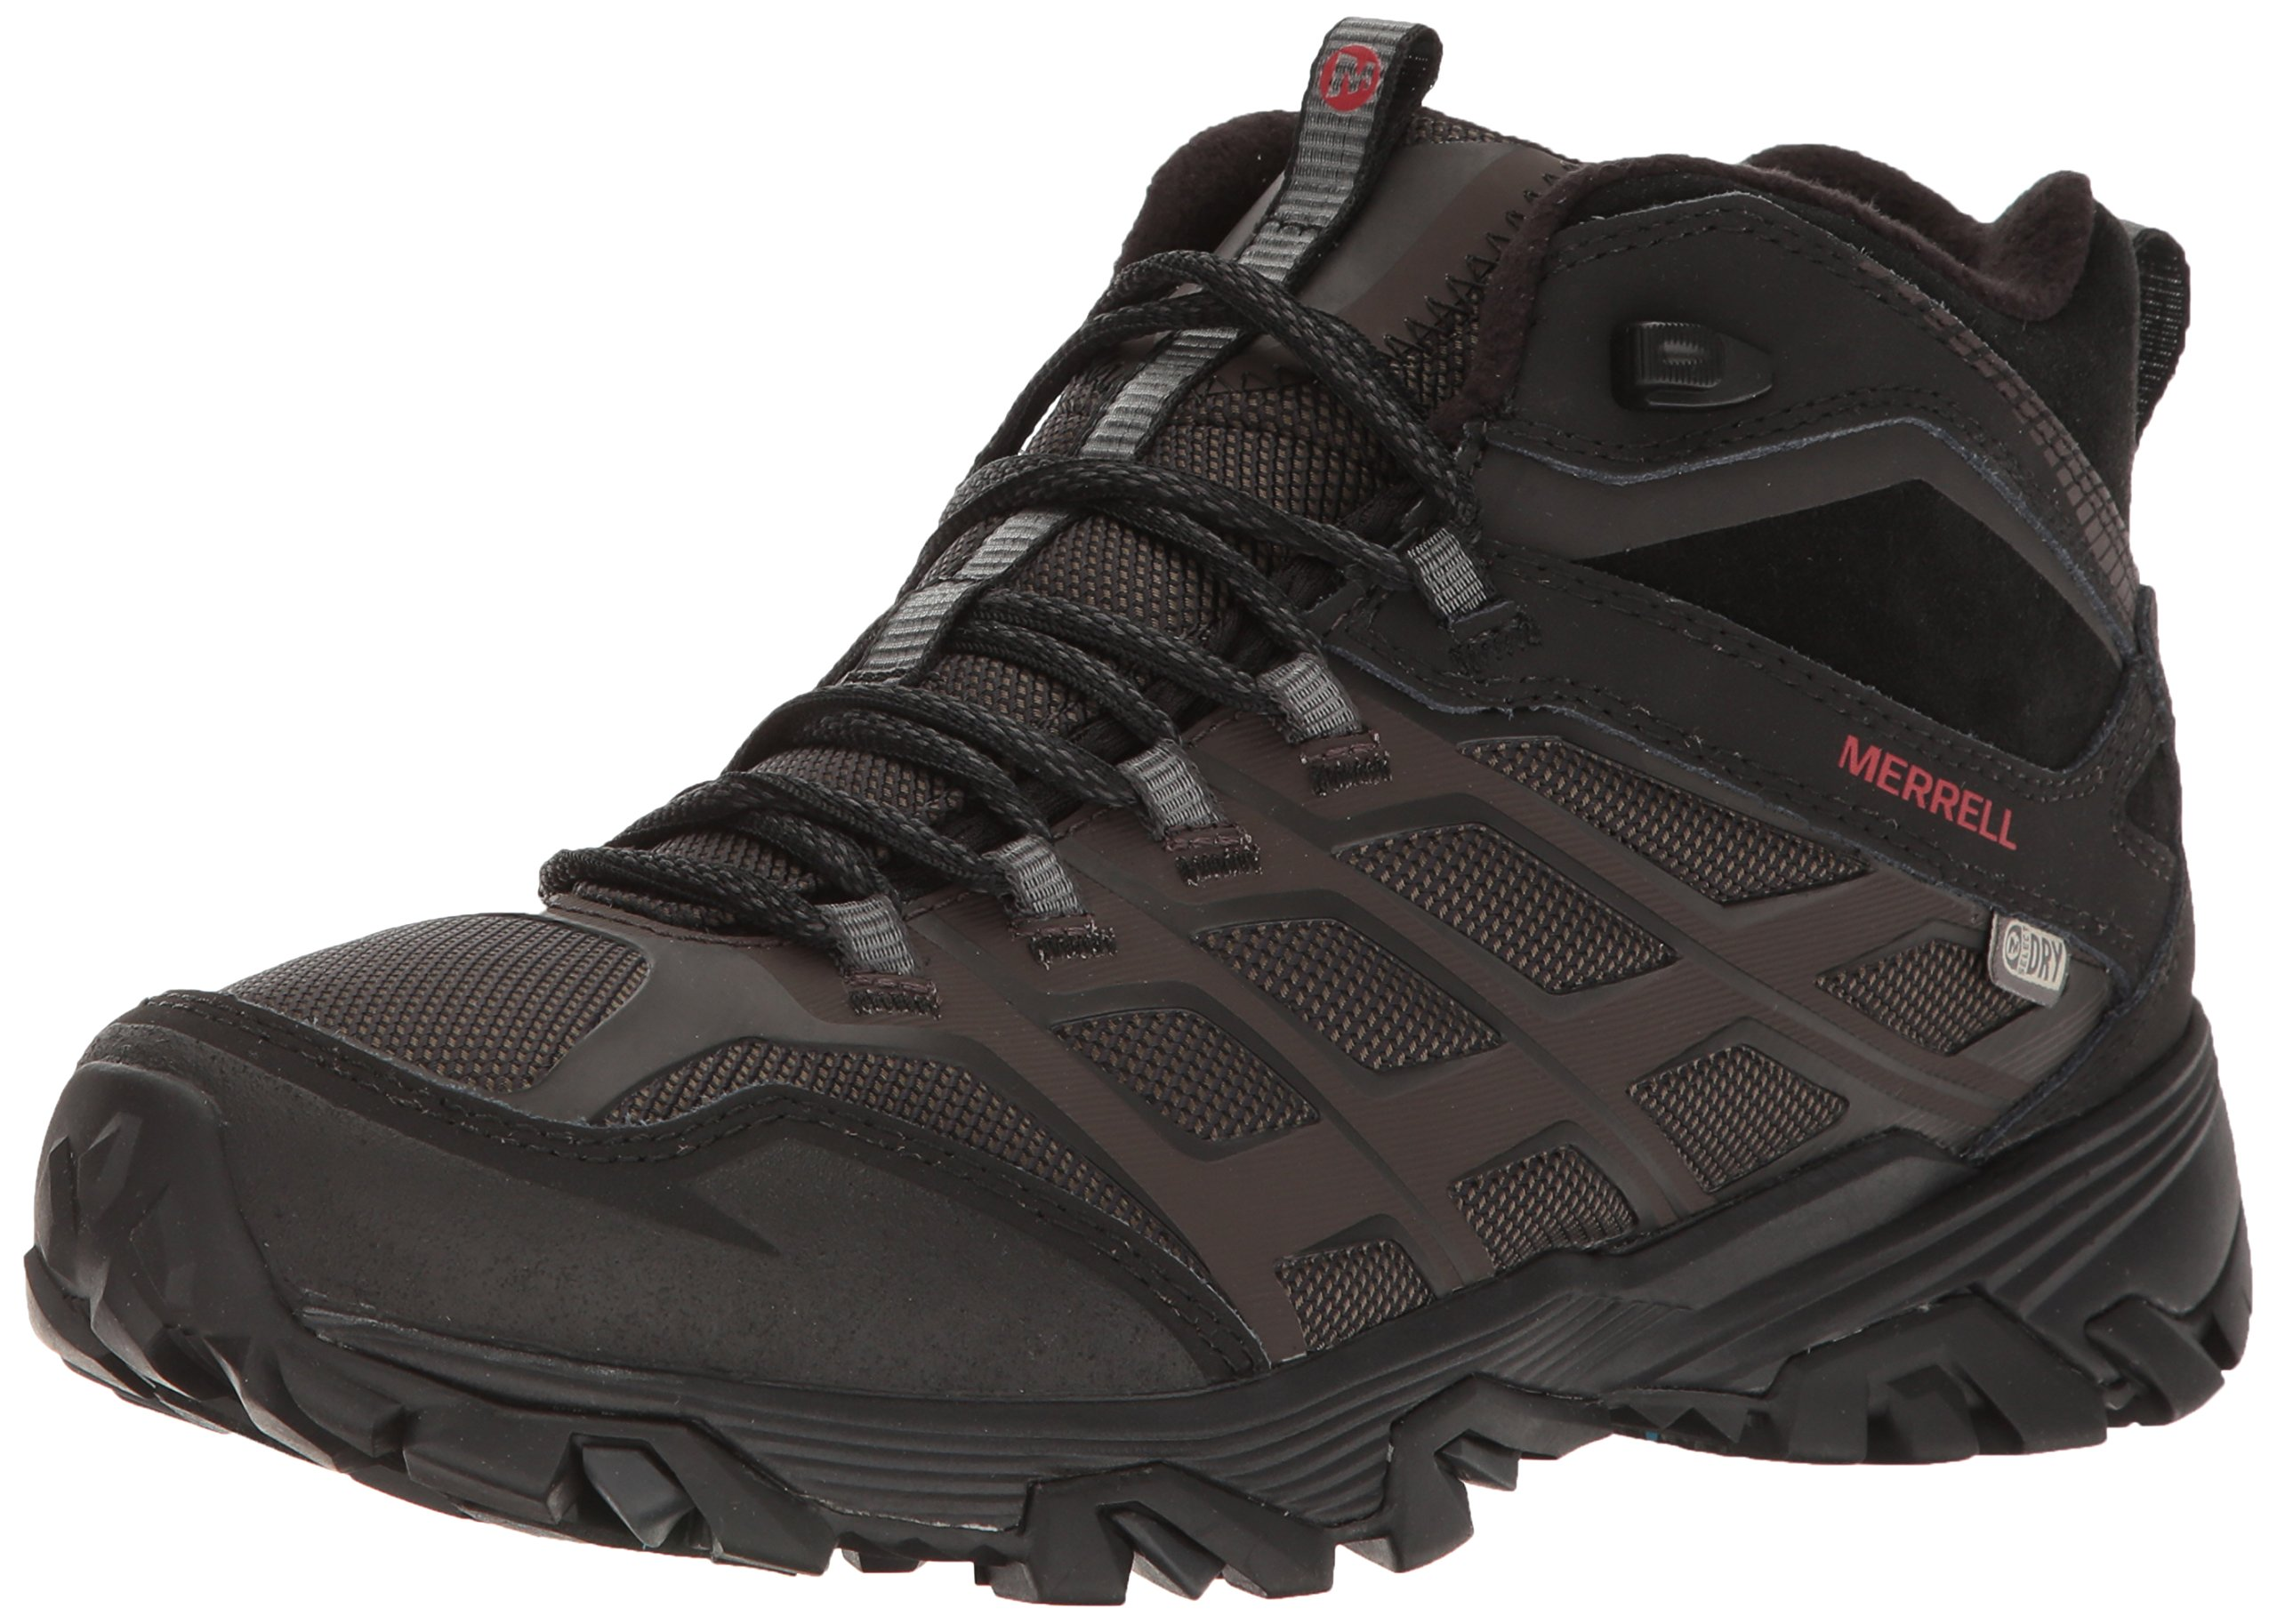 Merrell Men's Moab FST Ice + Thermo Winter Boot, Black, 9.5 M US by Merrell